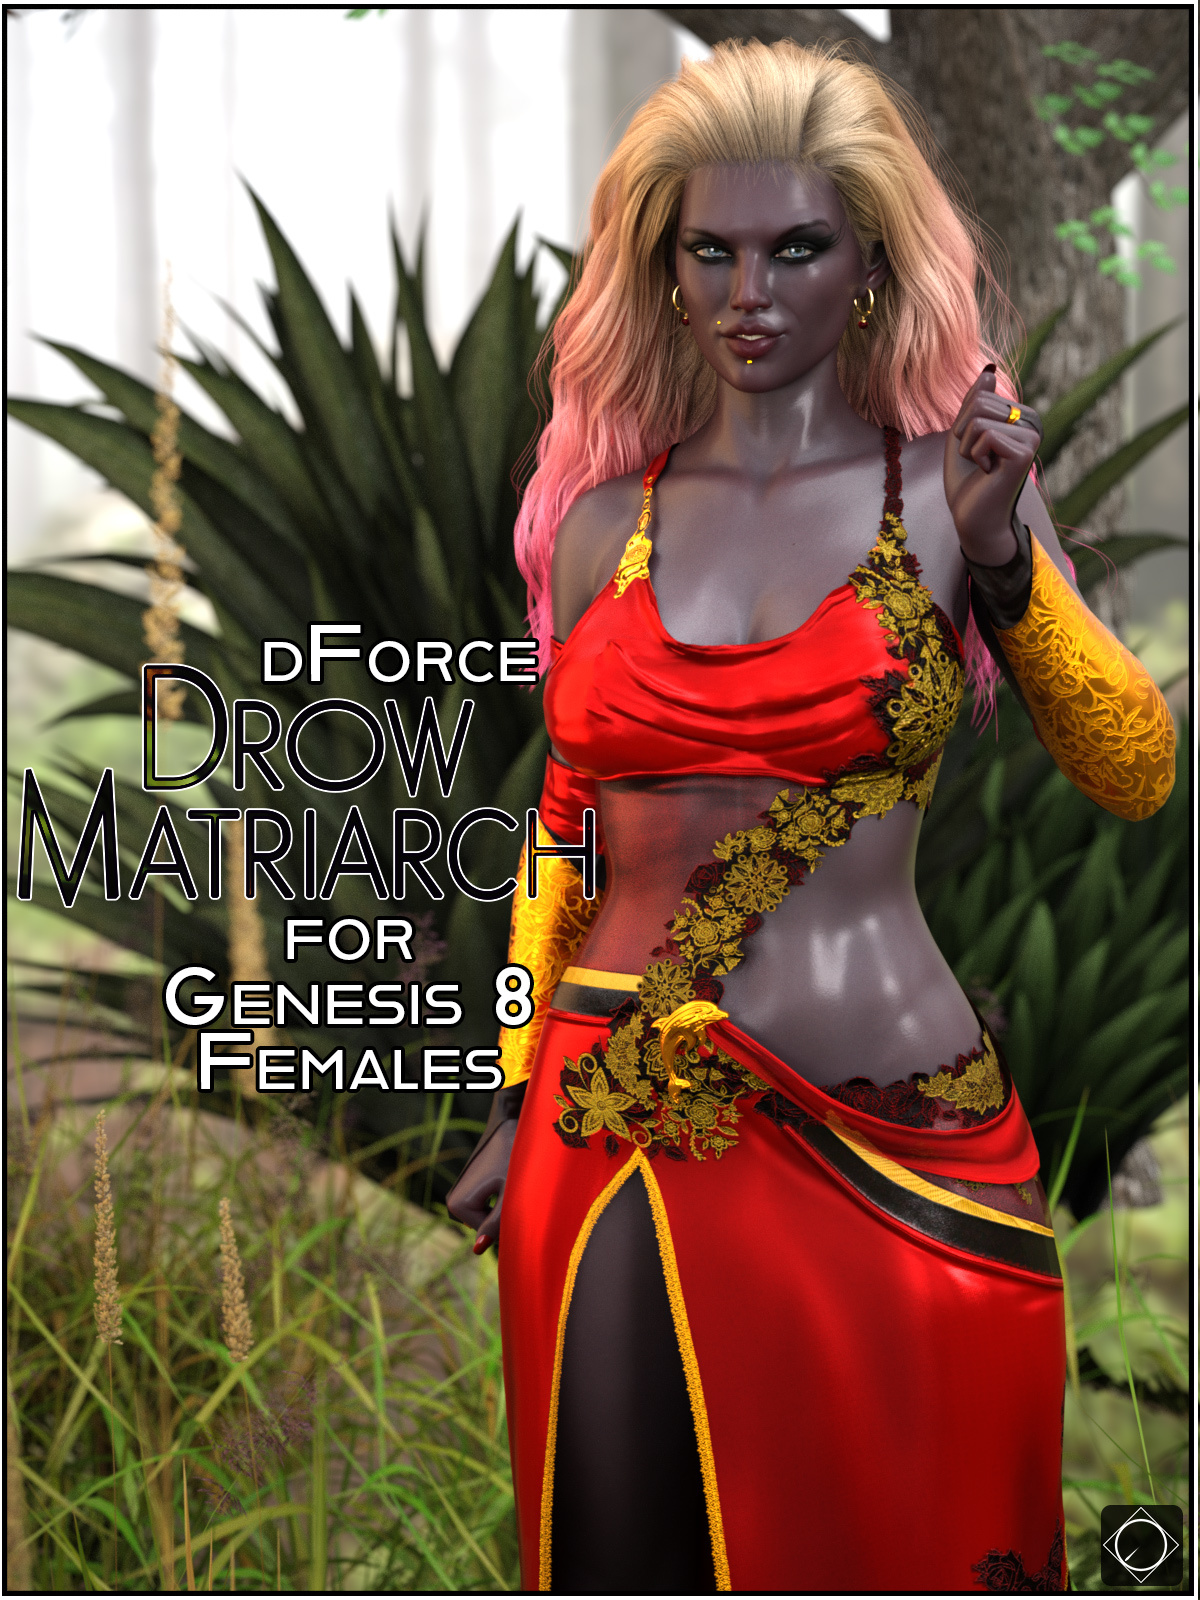 dForce Drow Matriarch for Genesis 8 Females by SWTrium